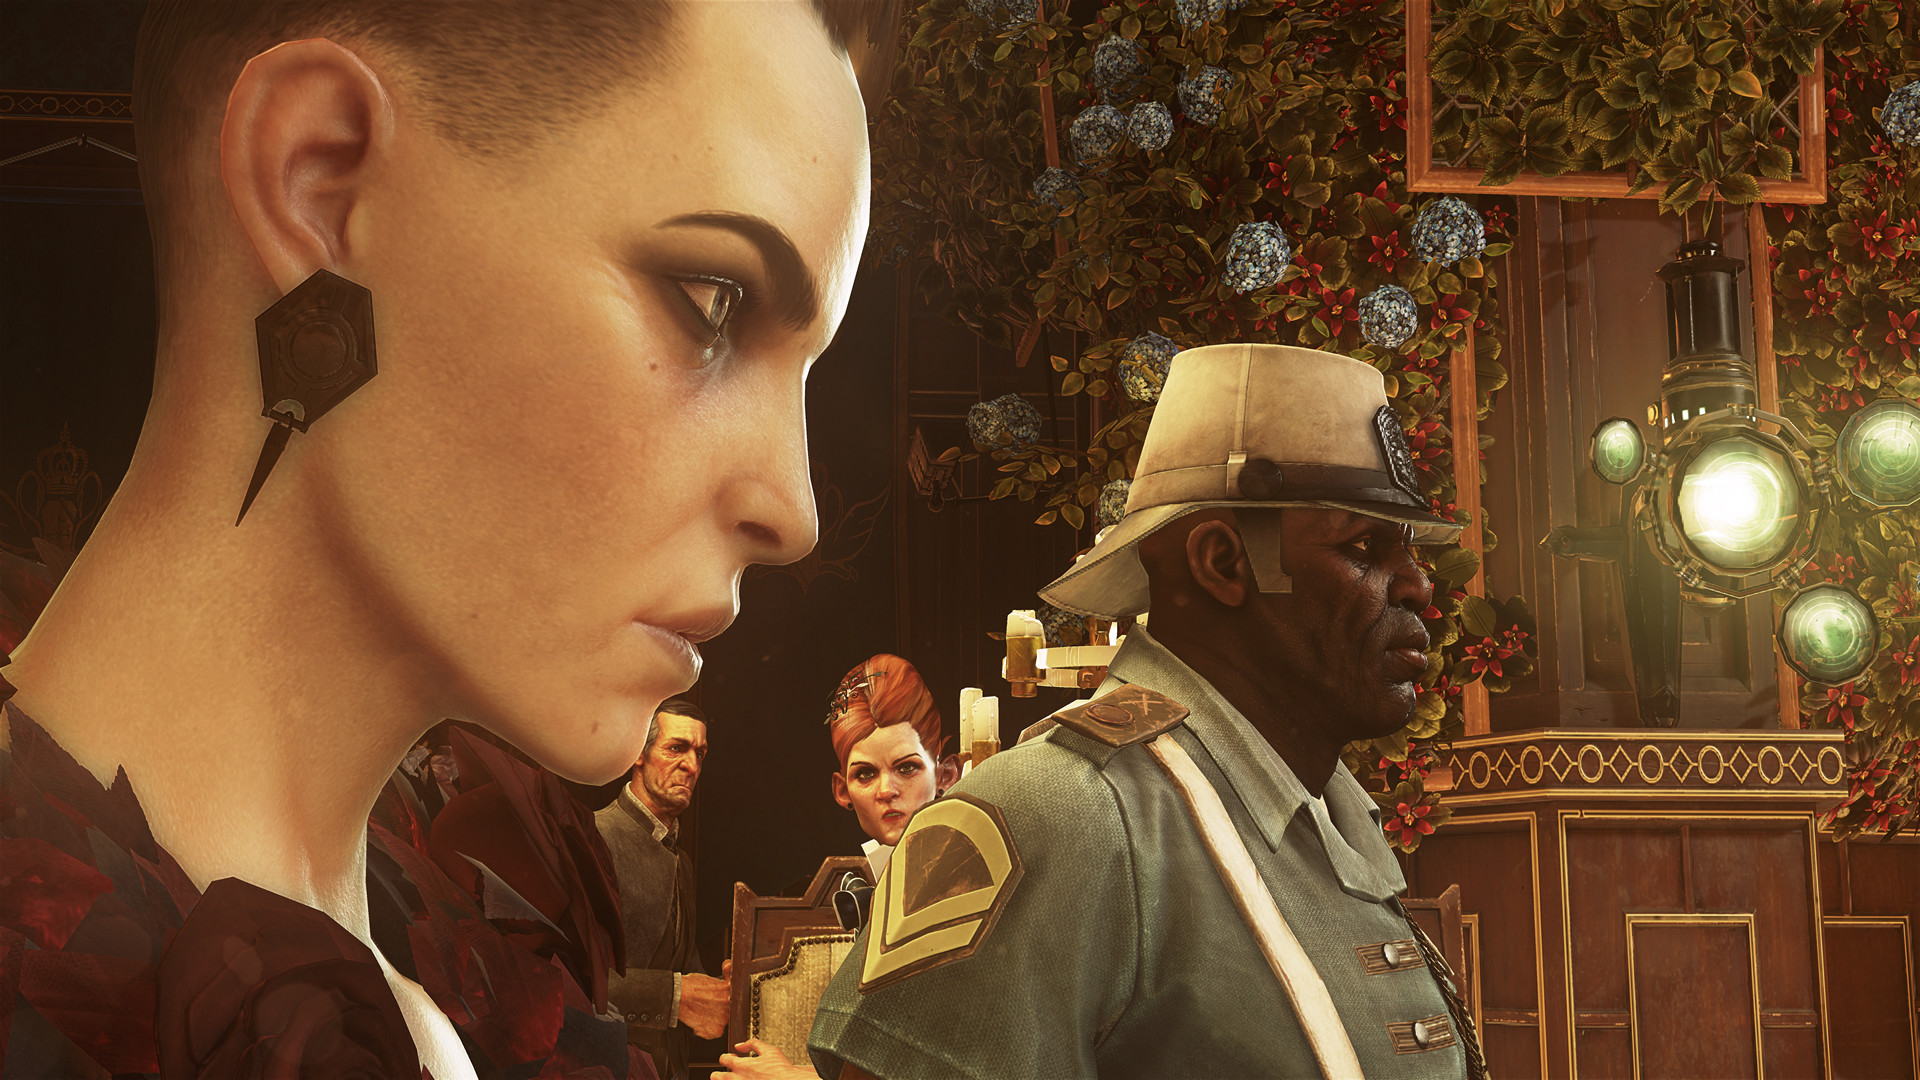 ¿Tiene tu PC el sigilo suficiente para correr Dishonored 2? [Requisitos + trailer de la historia]